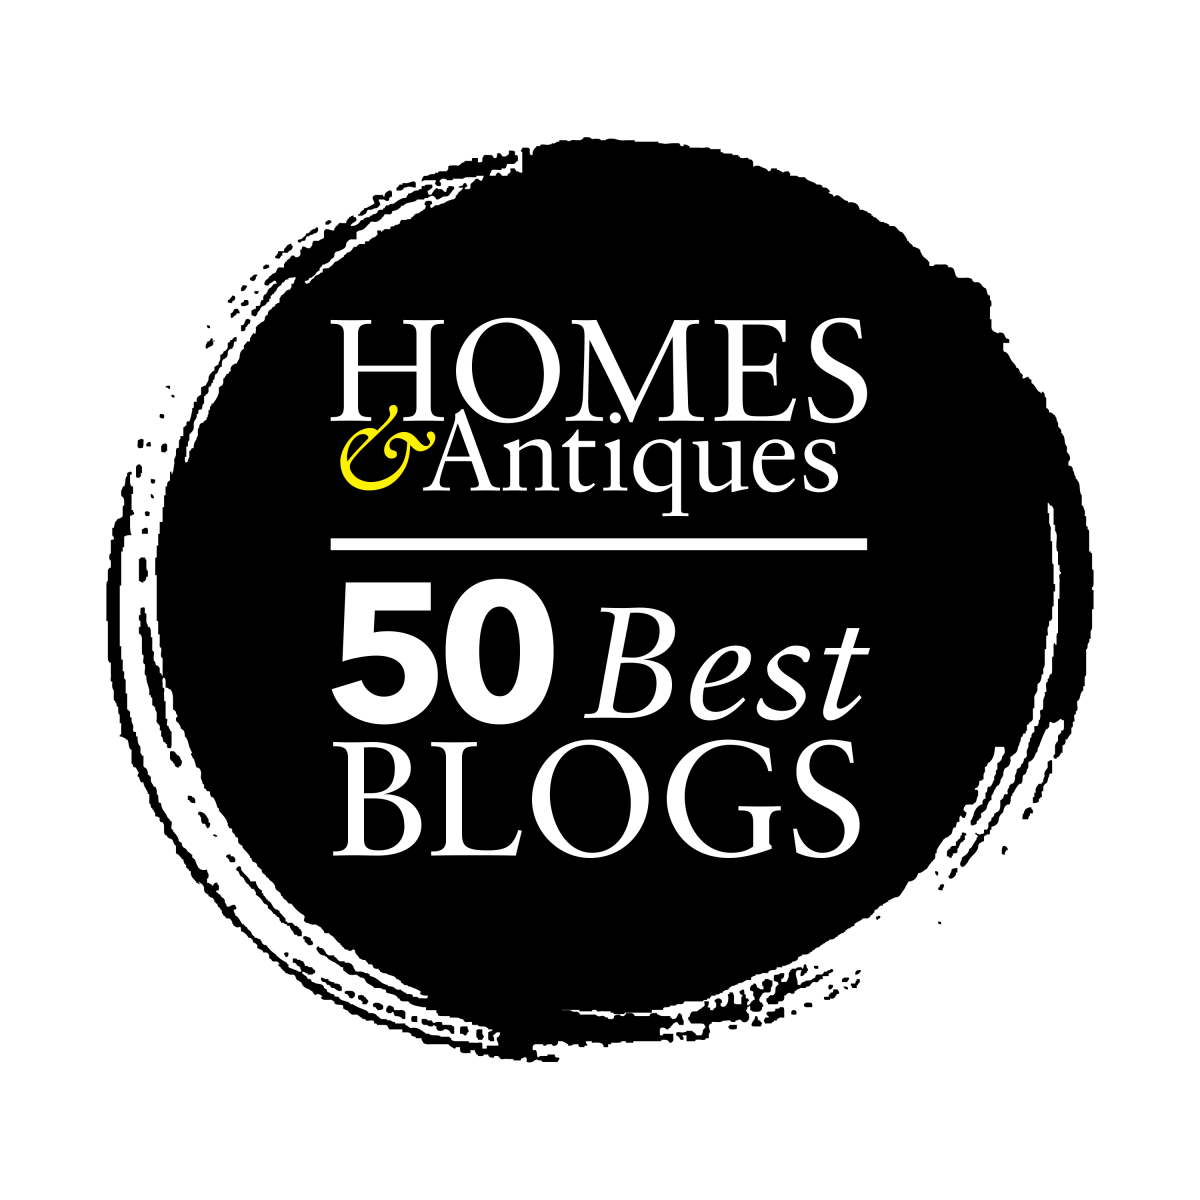 Homes & Antiques 50 Best Blogs Graphic